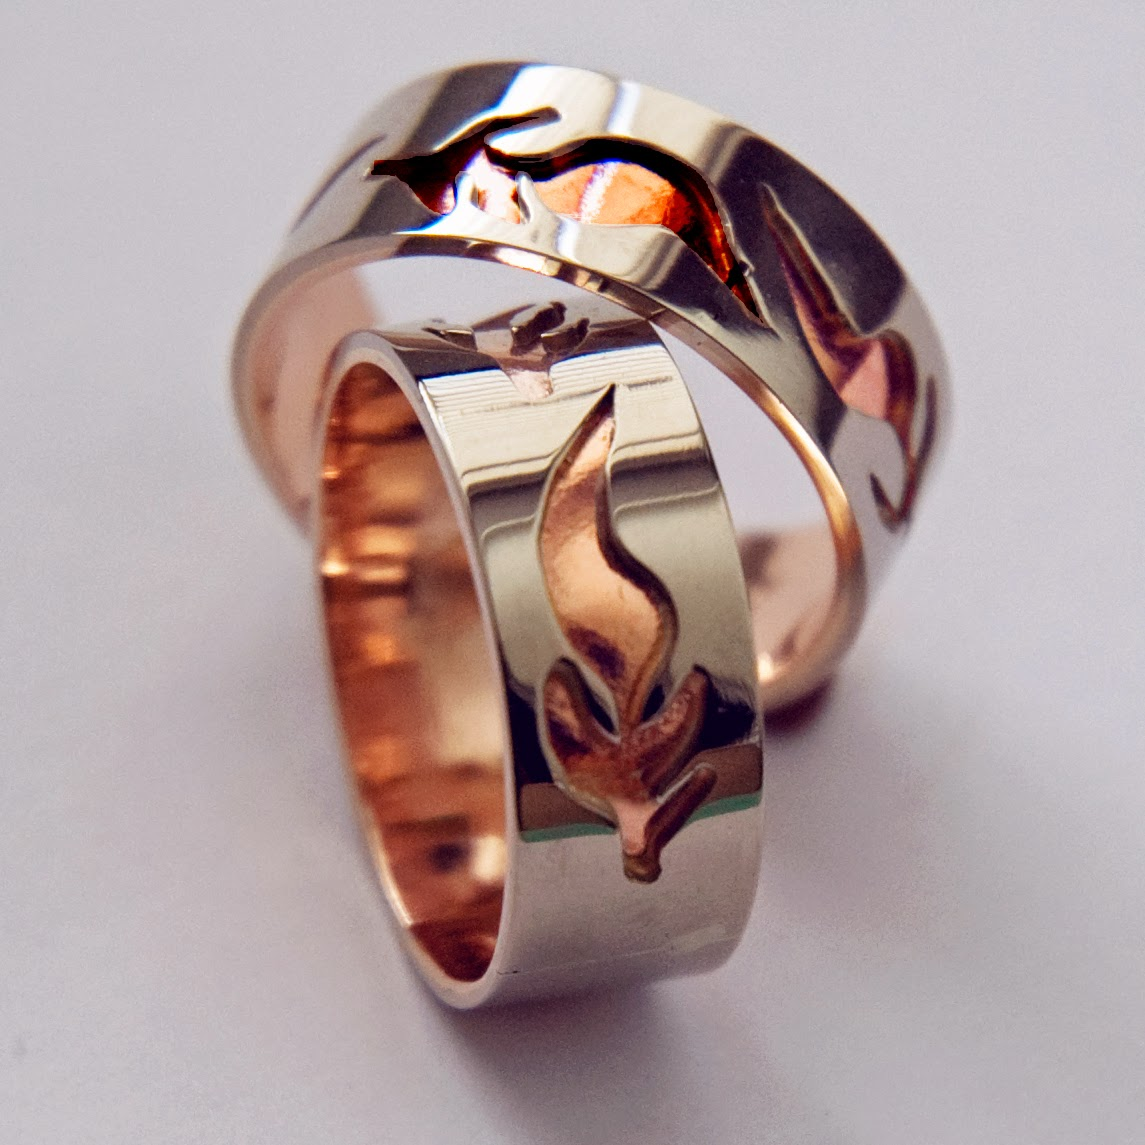 Anishinaabe-style wedding rings Fires by Zhaawano | Fisher Star ...